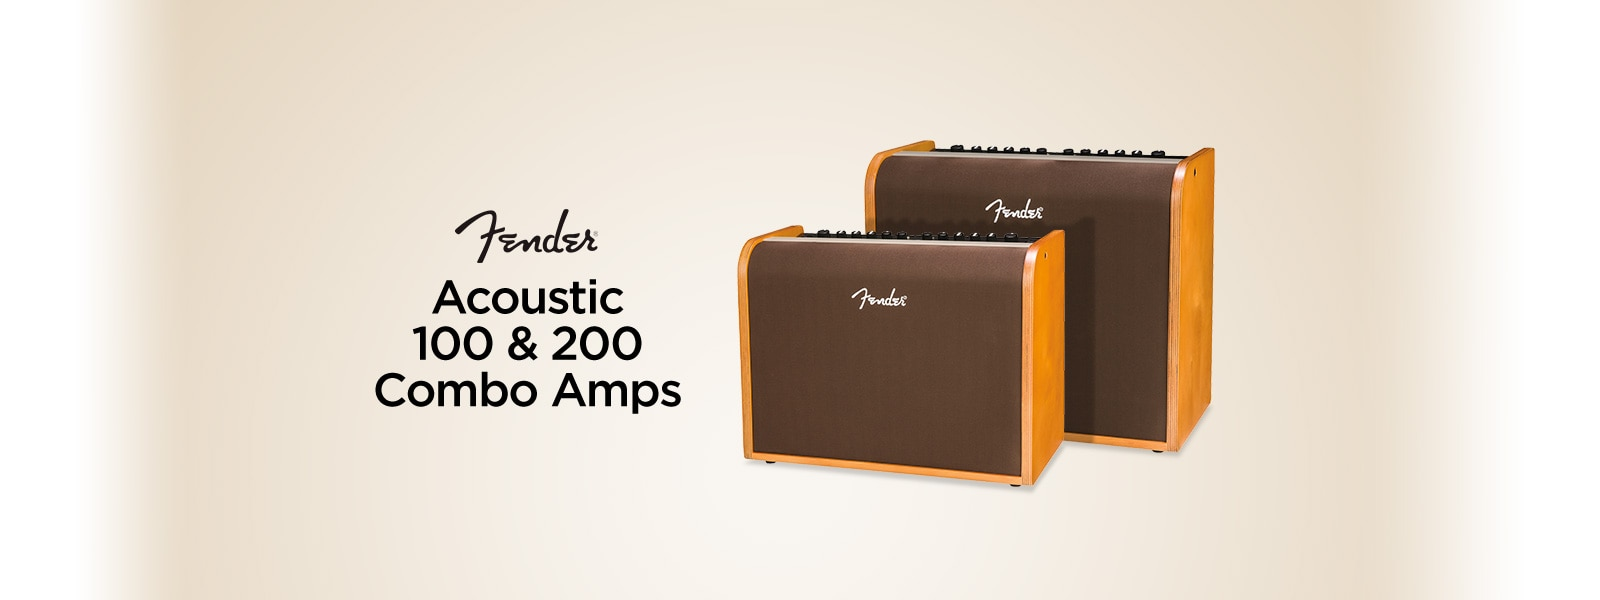 Acoustic 100 and 200 combo amps